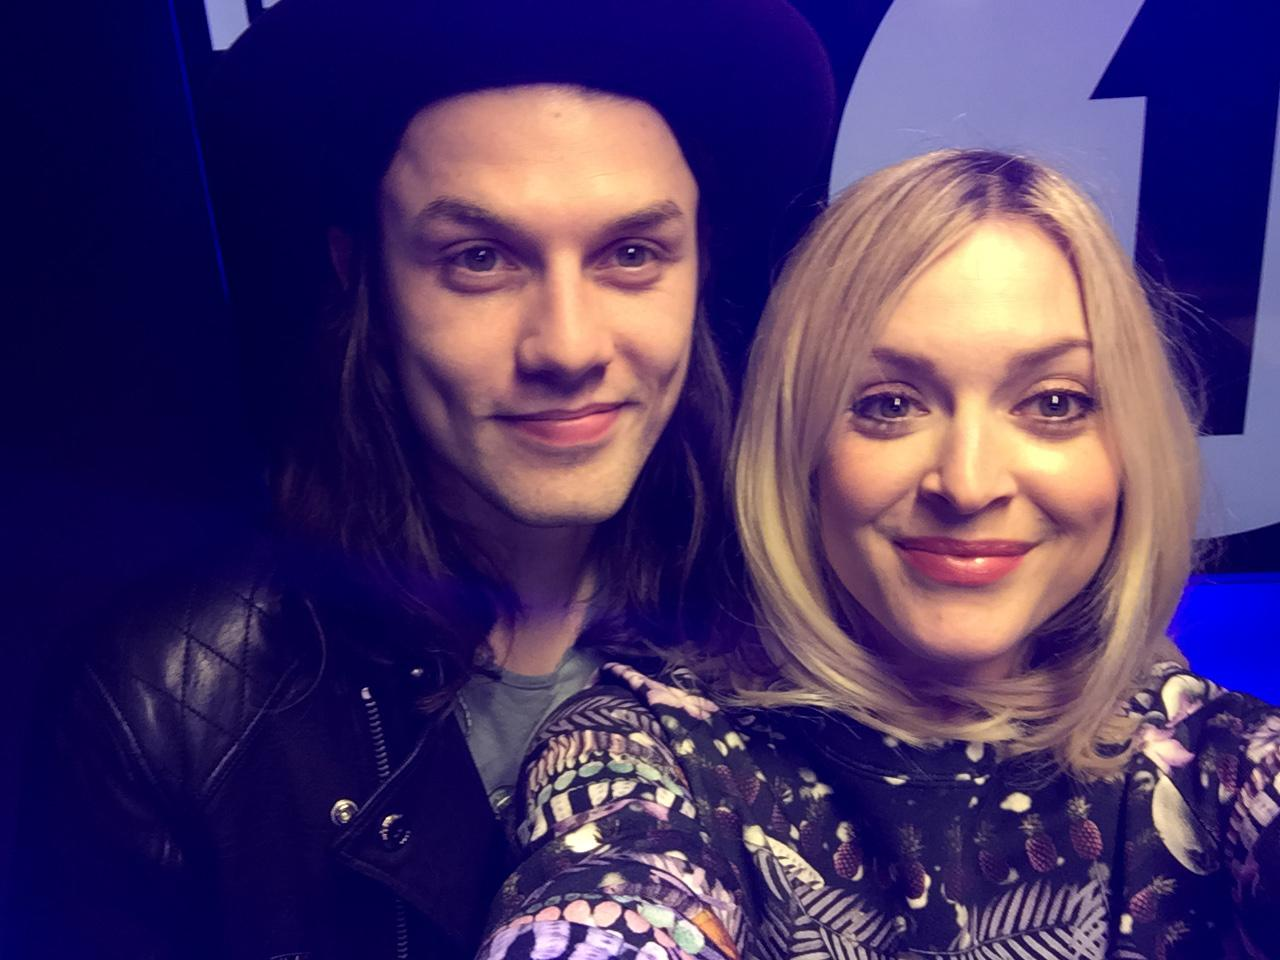 RT @BBCR1: We can't wait to hear @JamesBayMusic's cover of @rihanna's 4 5 Seconds in the Live Lounge at midday! http://t.co/QXdkuVCeCW